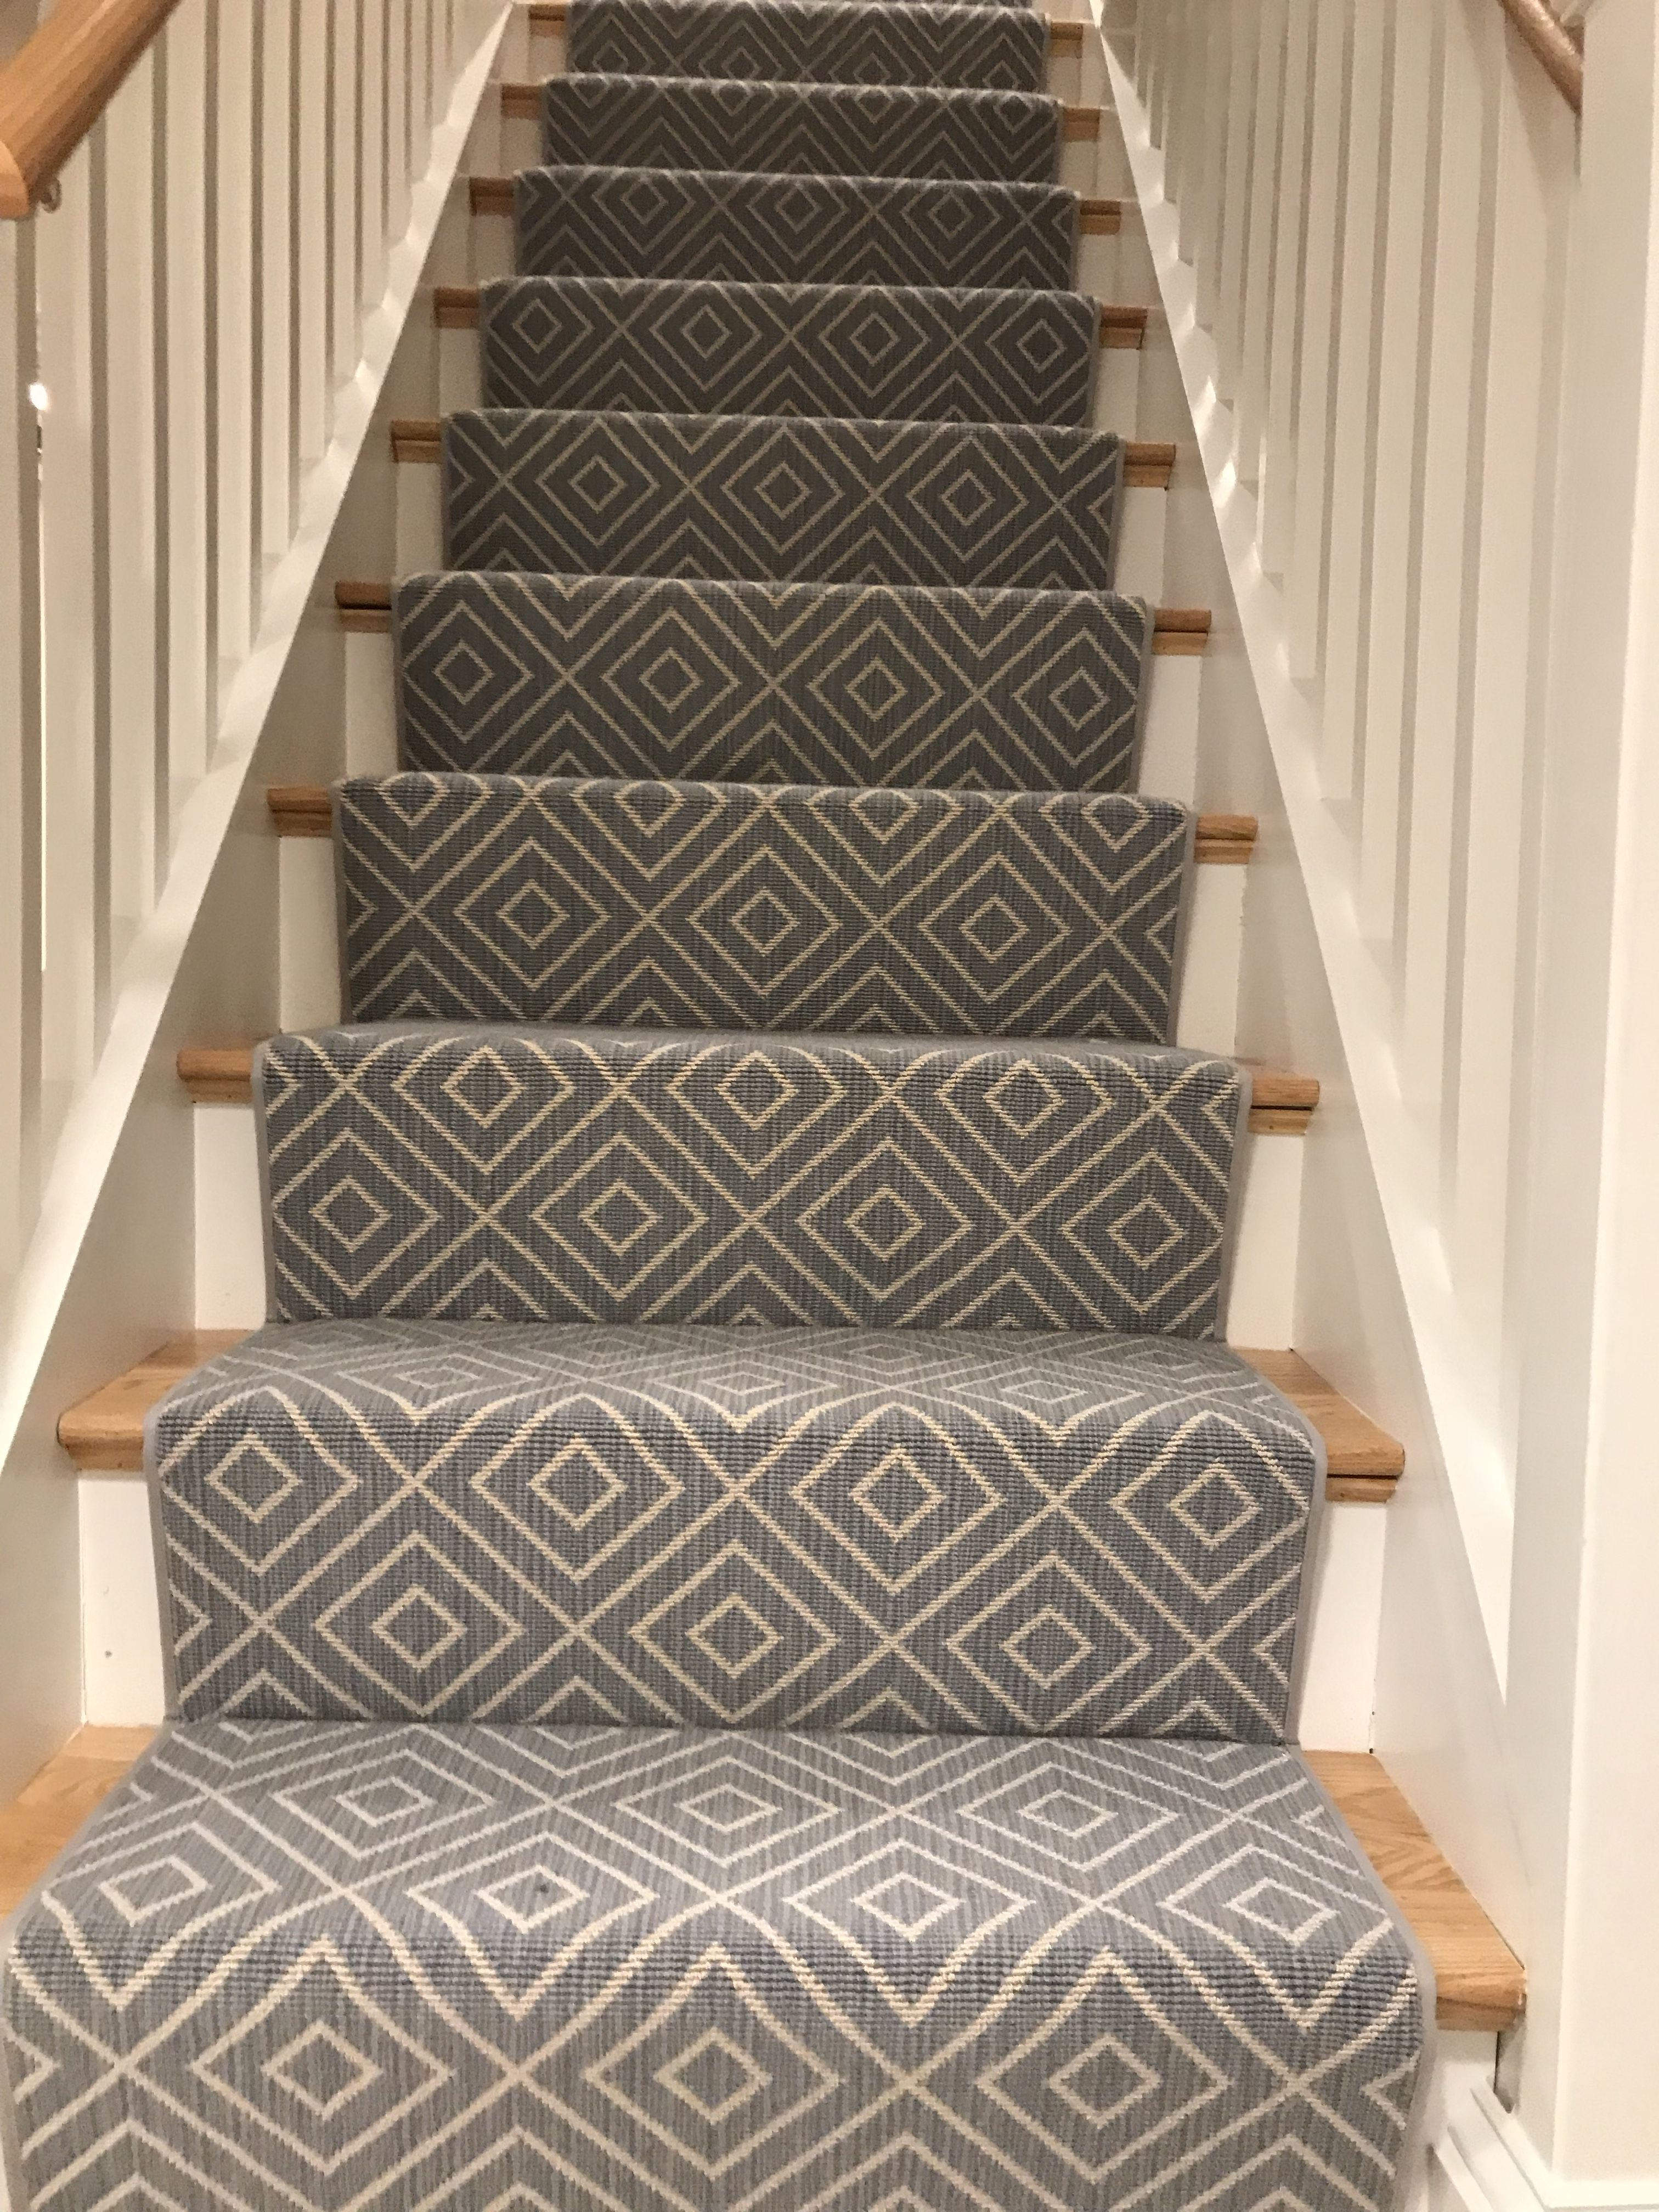 Pin By The Carpet Workroom On Geometric Stair Runners Rugs Geometric Stair Runner Stair Runner Carpet Stair Rugs